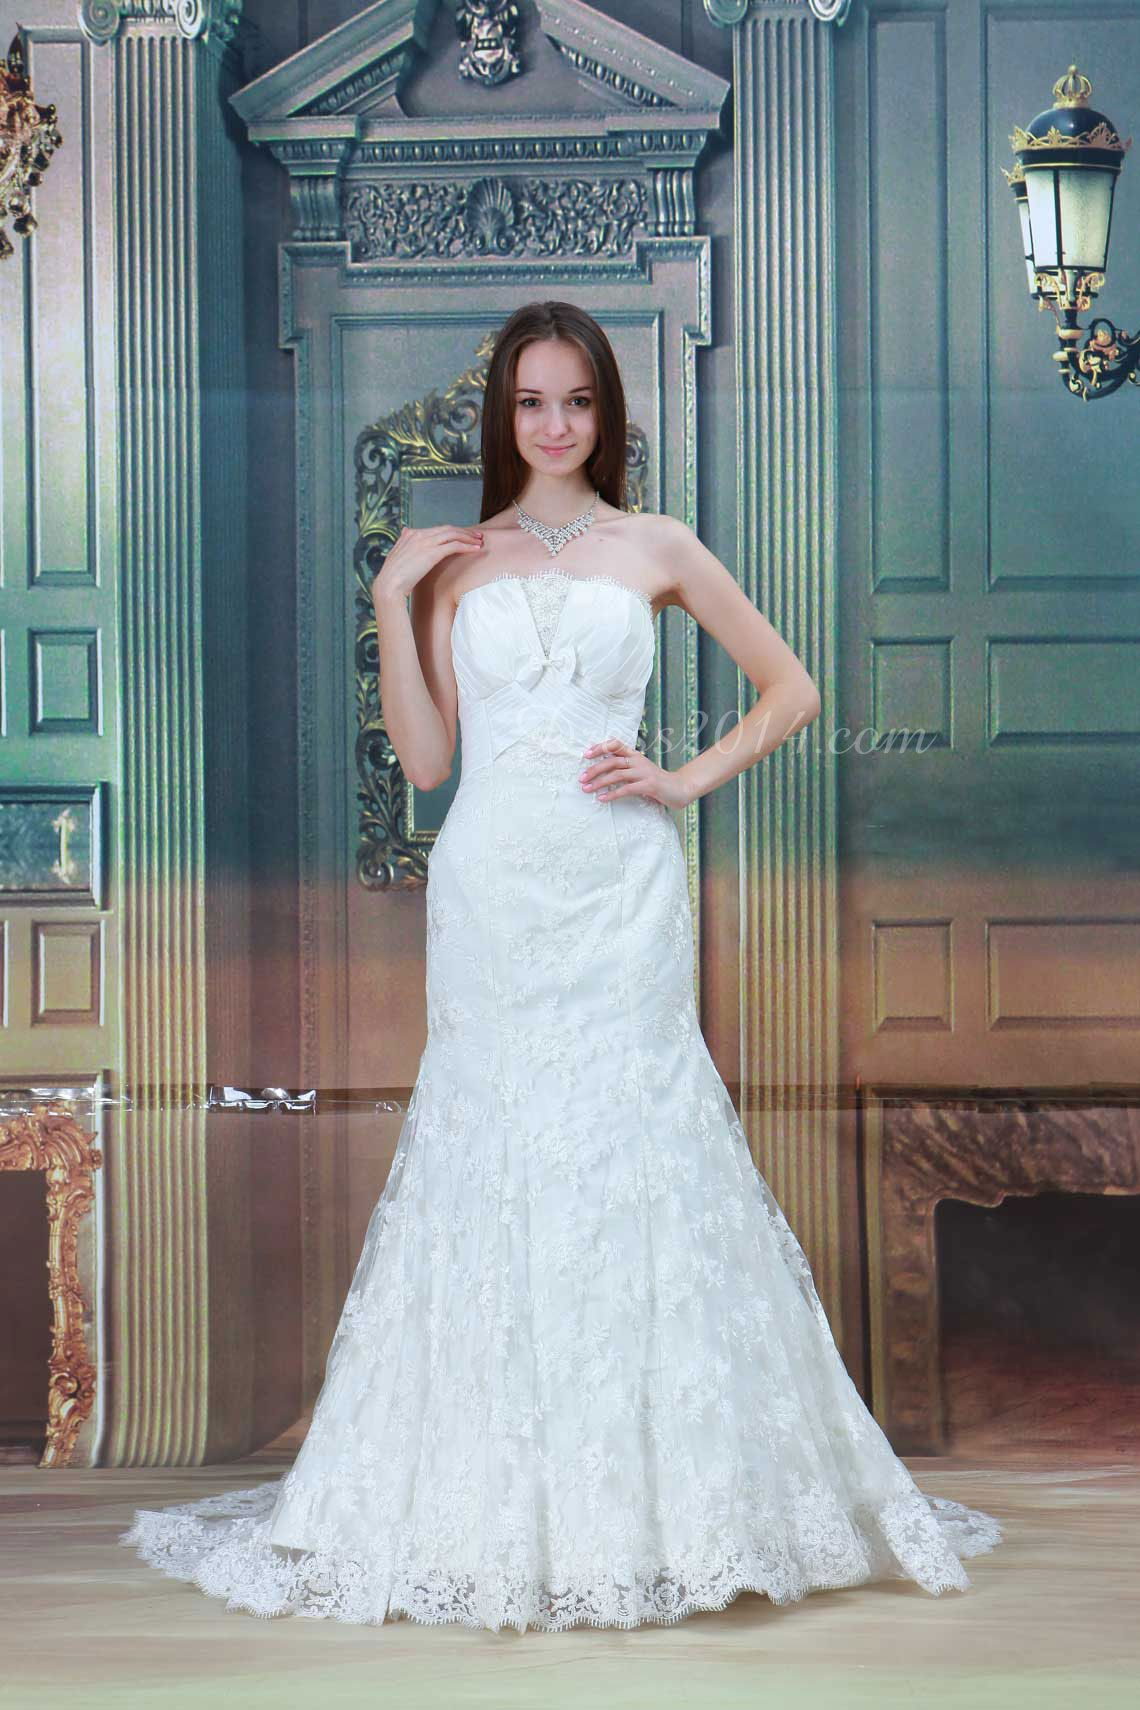 wedding dress,wedding dresses,wedding dress,wedding dresses